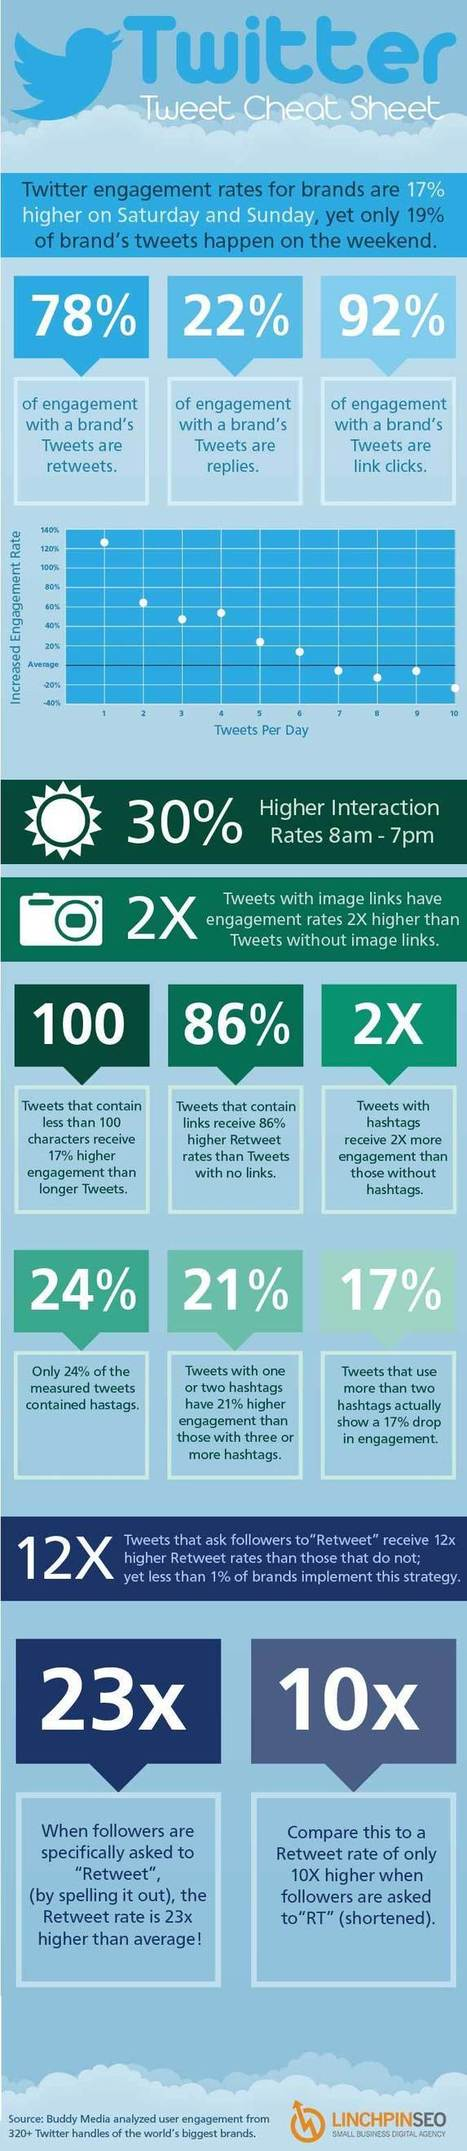 Is an Image Really Worth 1,000 Words? Images in Tweets Boost Engagement : LucidCrew Austin | Communication & PR | Scoop.it